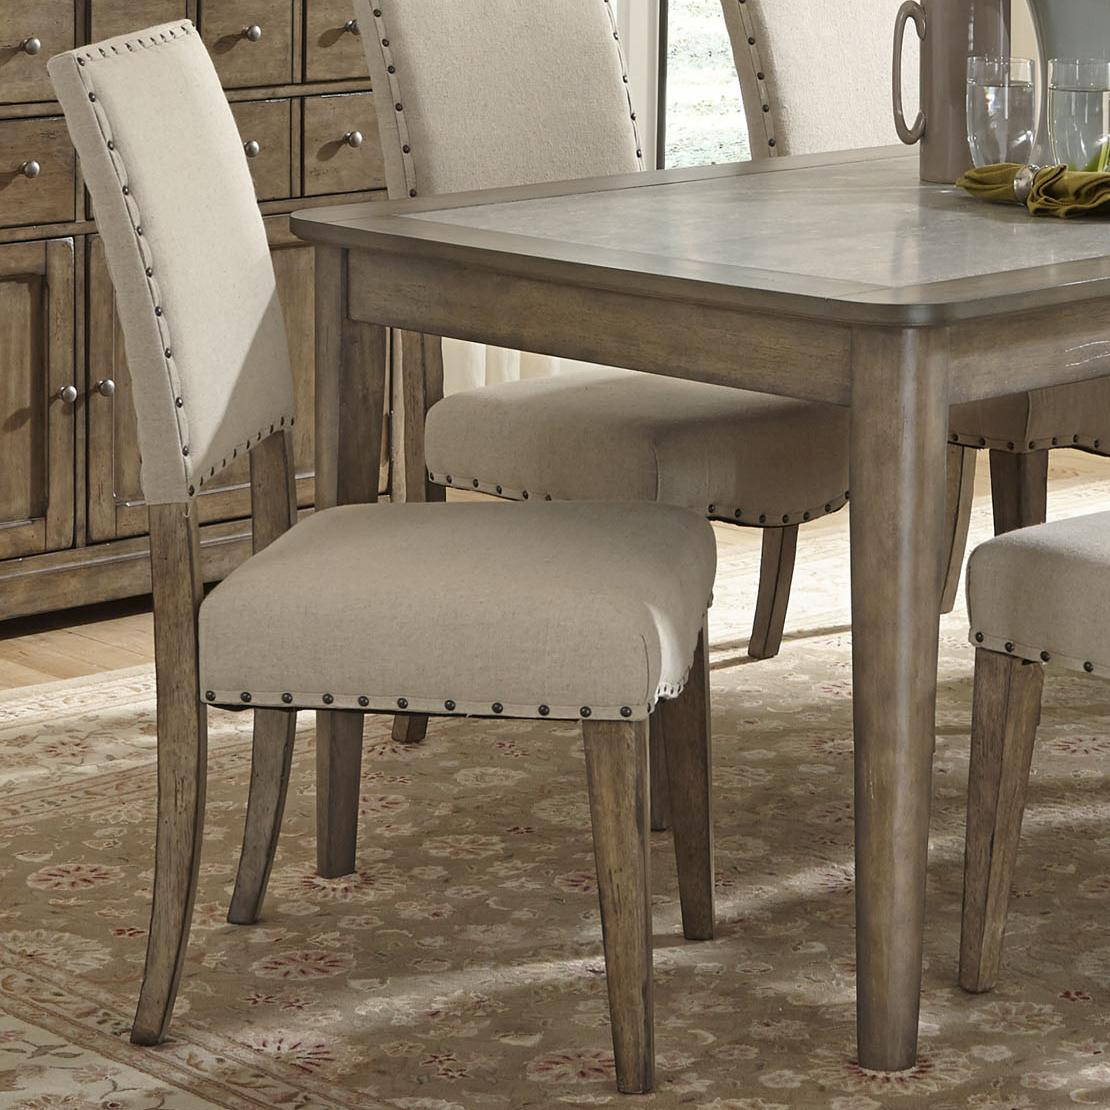 liberty dining chairs herman miller chair singapore furniture weatherford rustic casual upholstered side